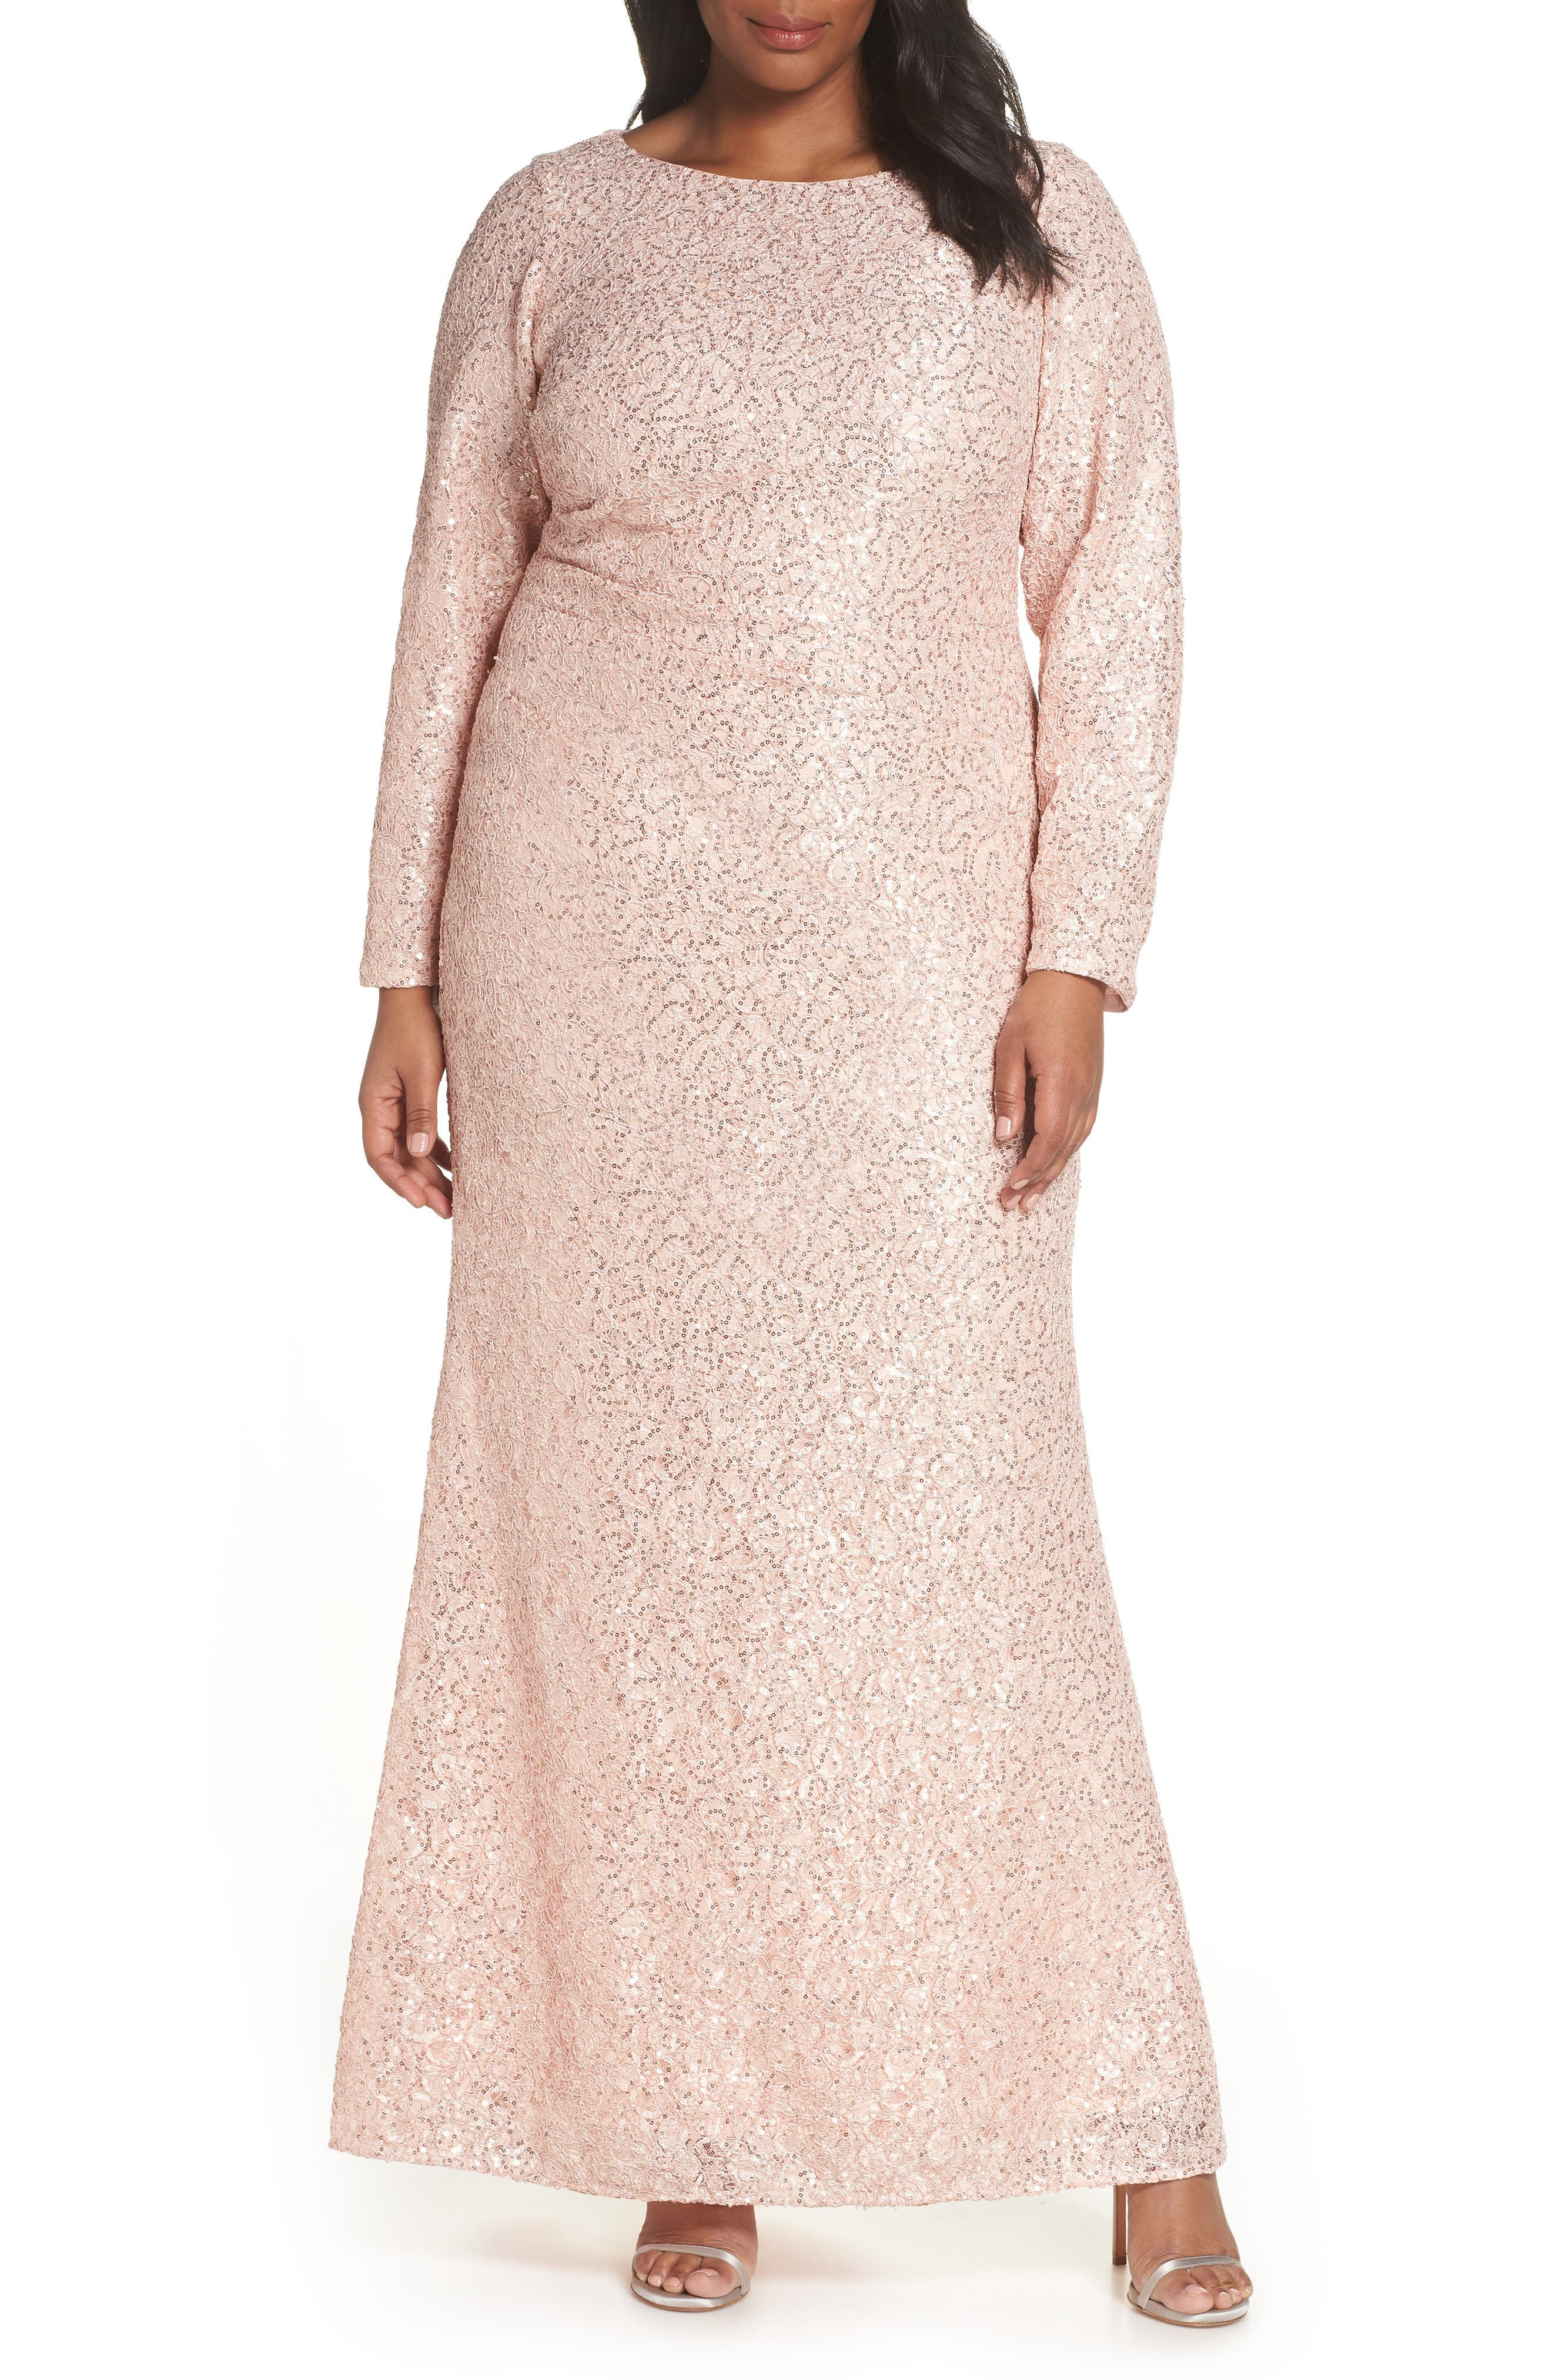 Plus Size Vince Camuto Sequin Lace Evening Dress, Pink